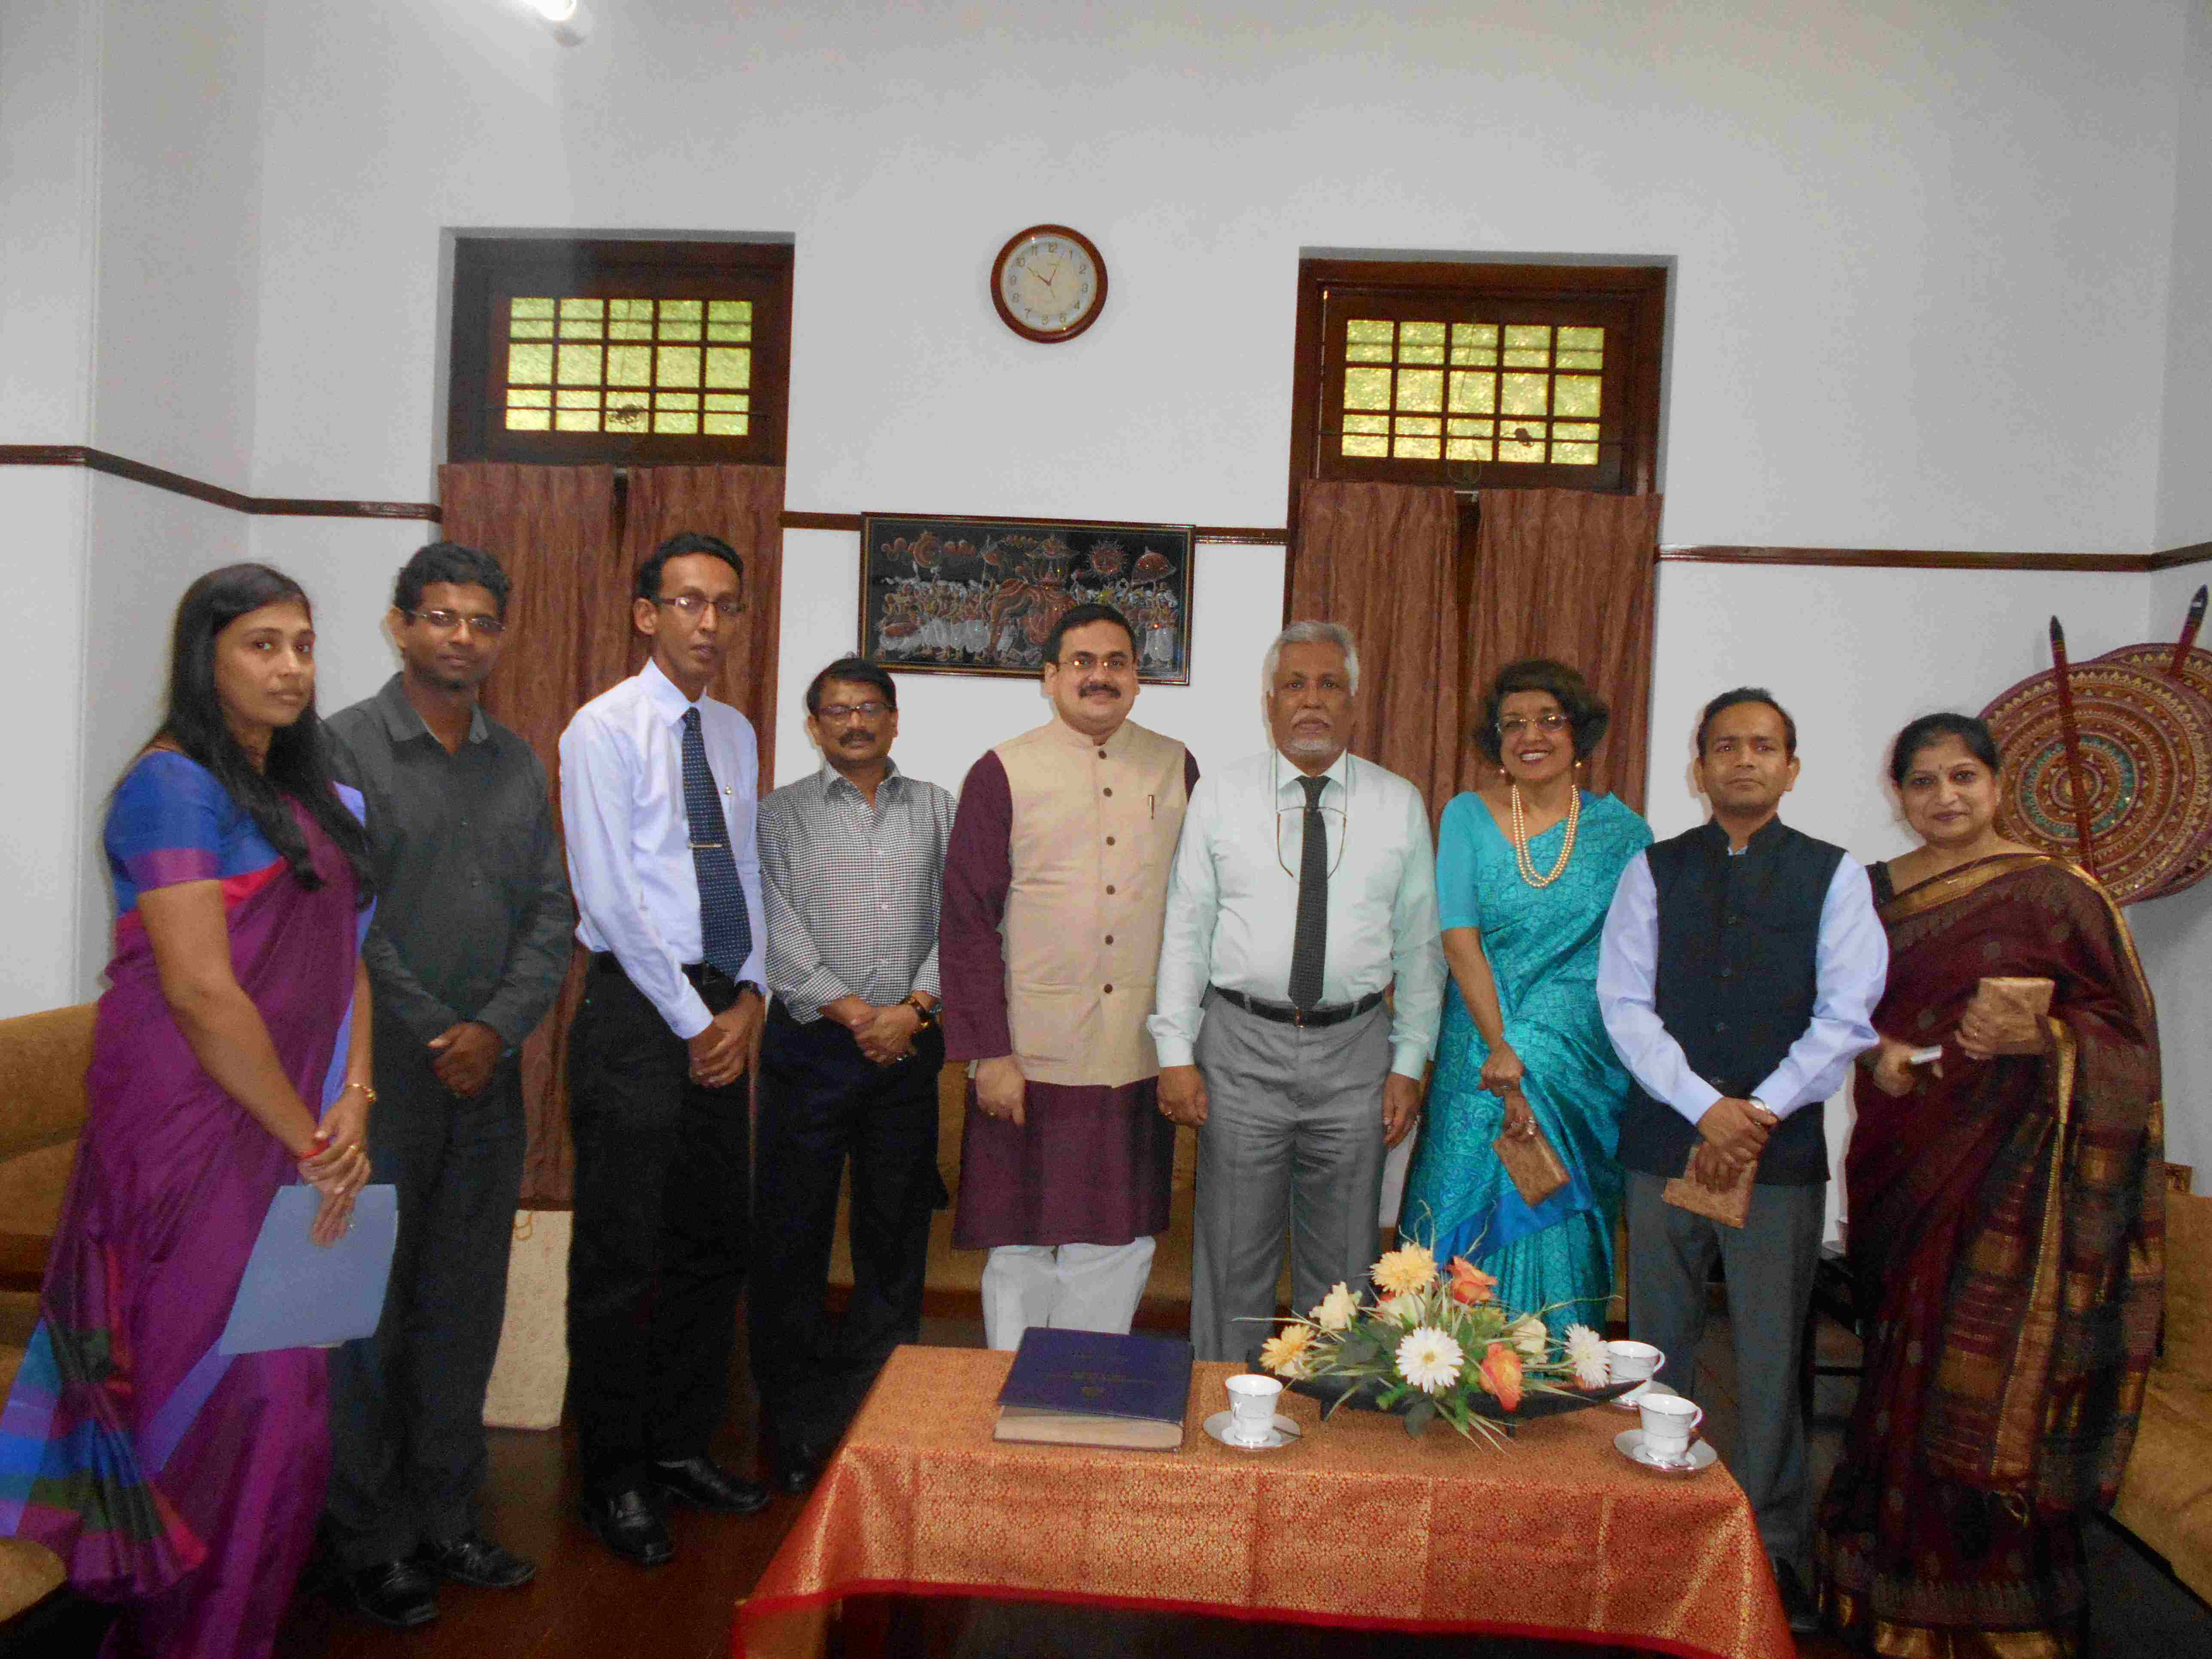 Her Excellency Professor Veena Sirki and ICCR Officials visit University of Colombo